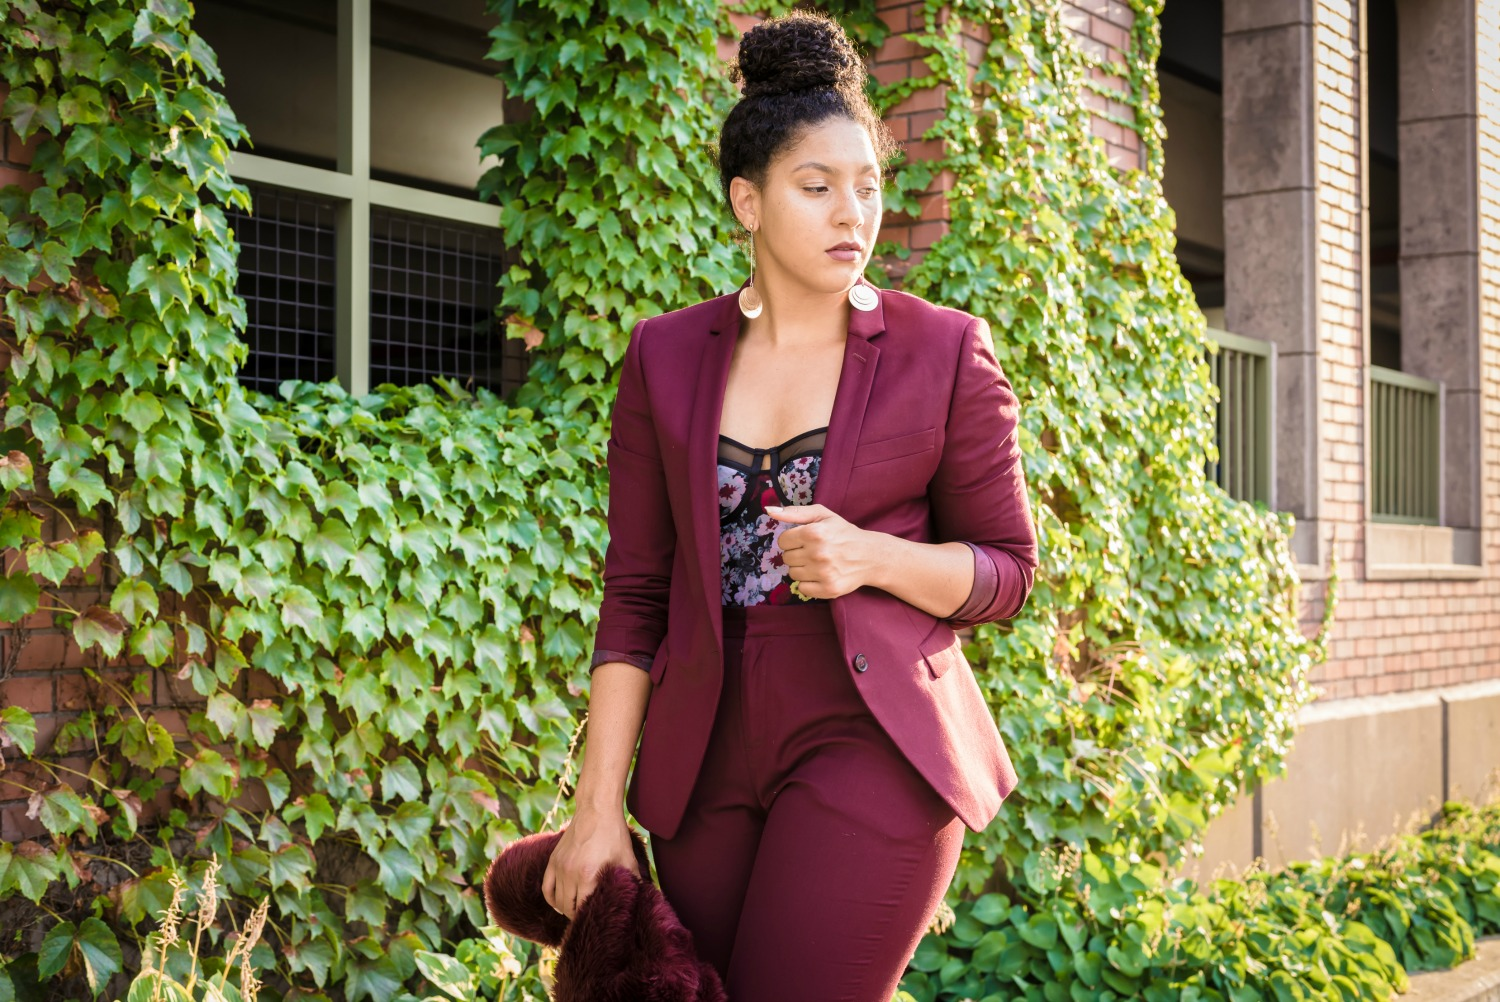 fall-floral-bodysuit-outfit-burgundy-suit-lil-miss-jb-style